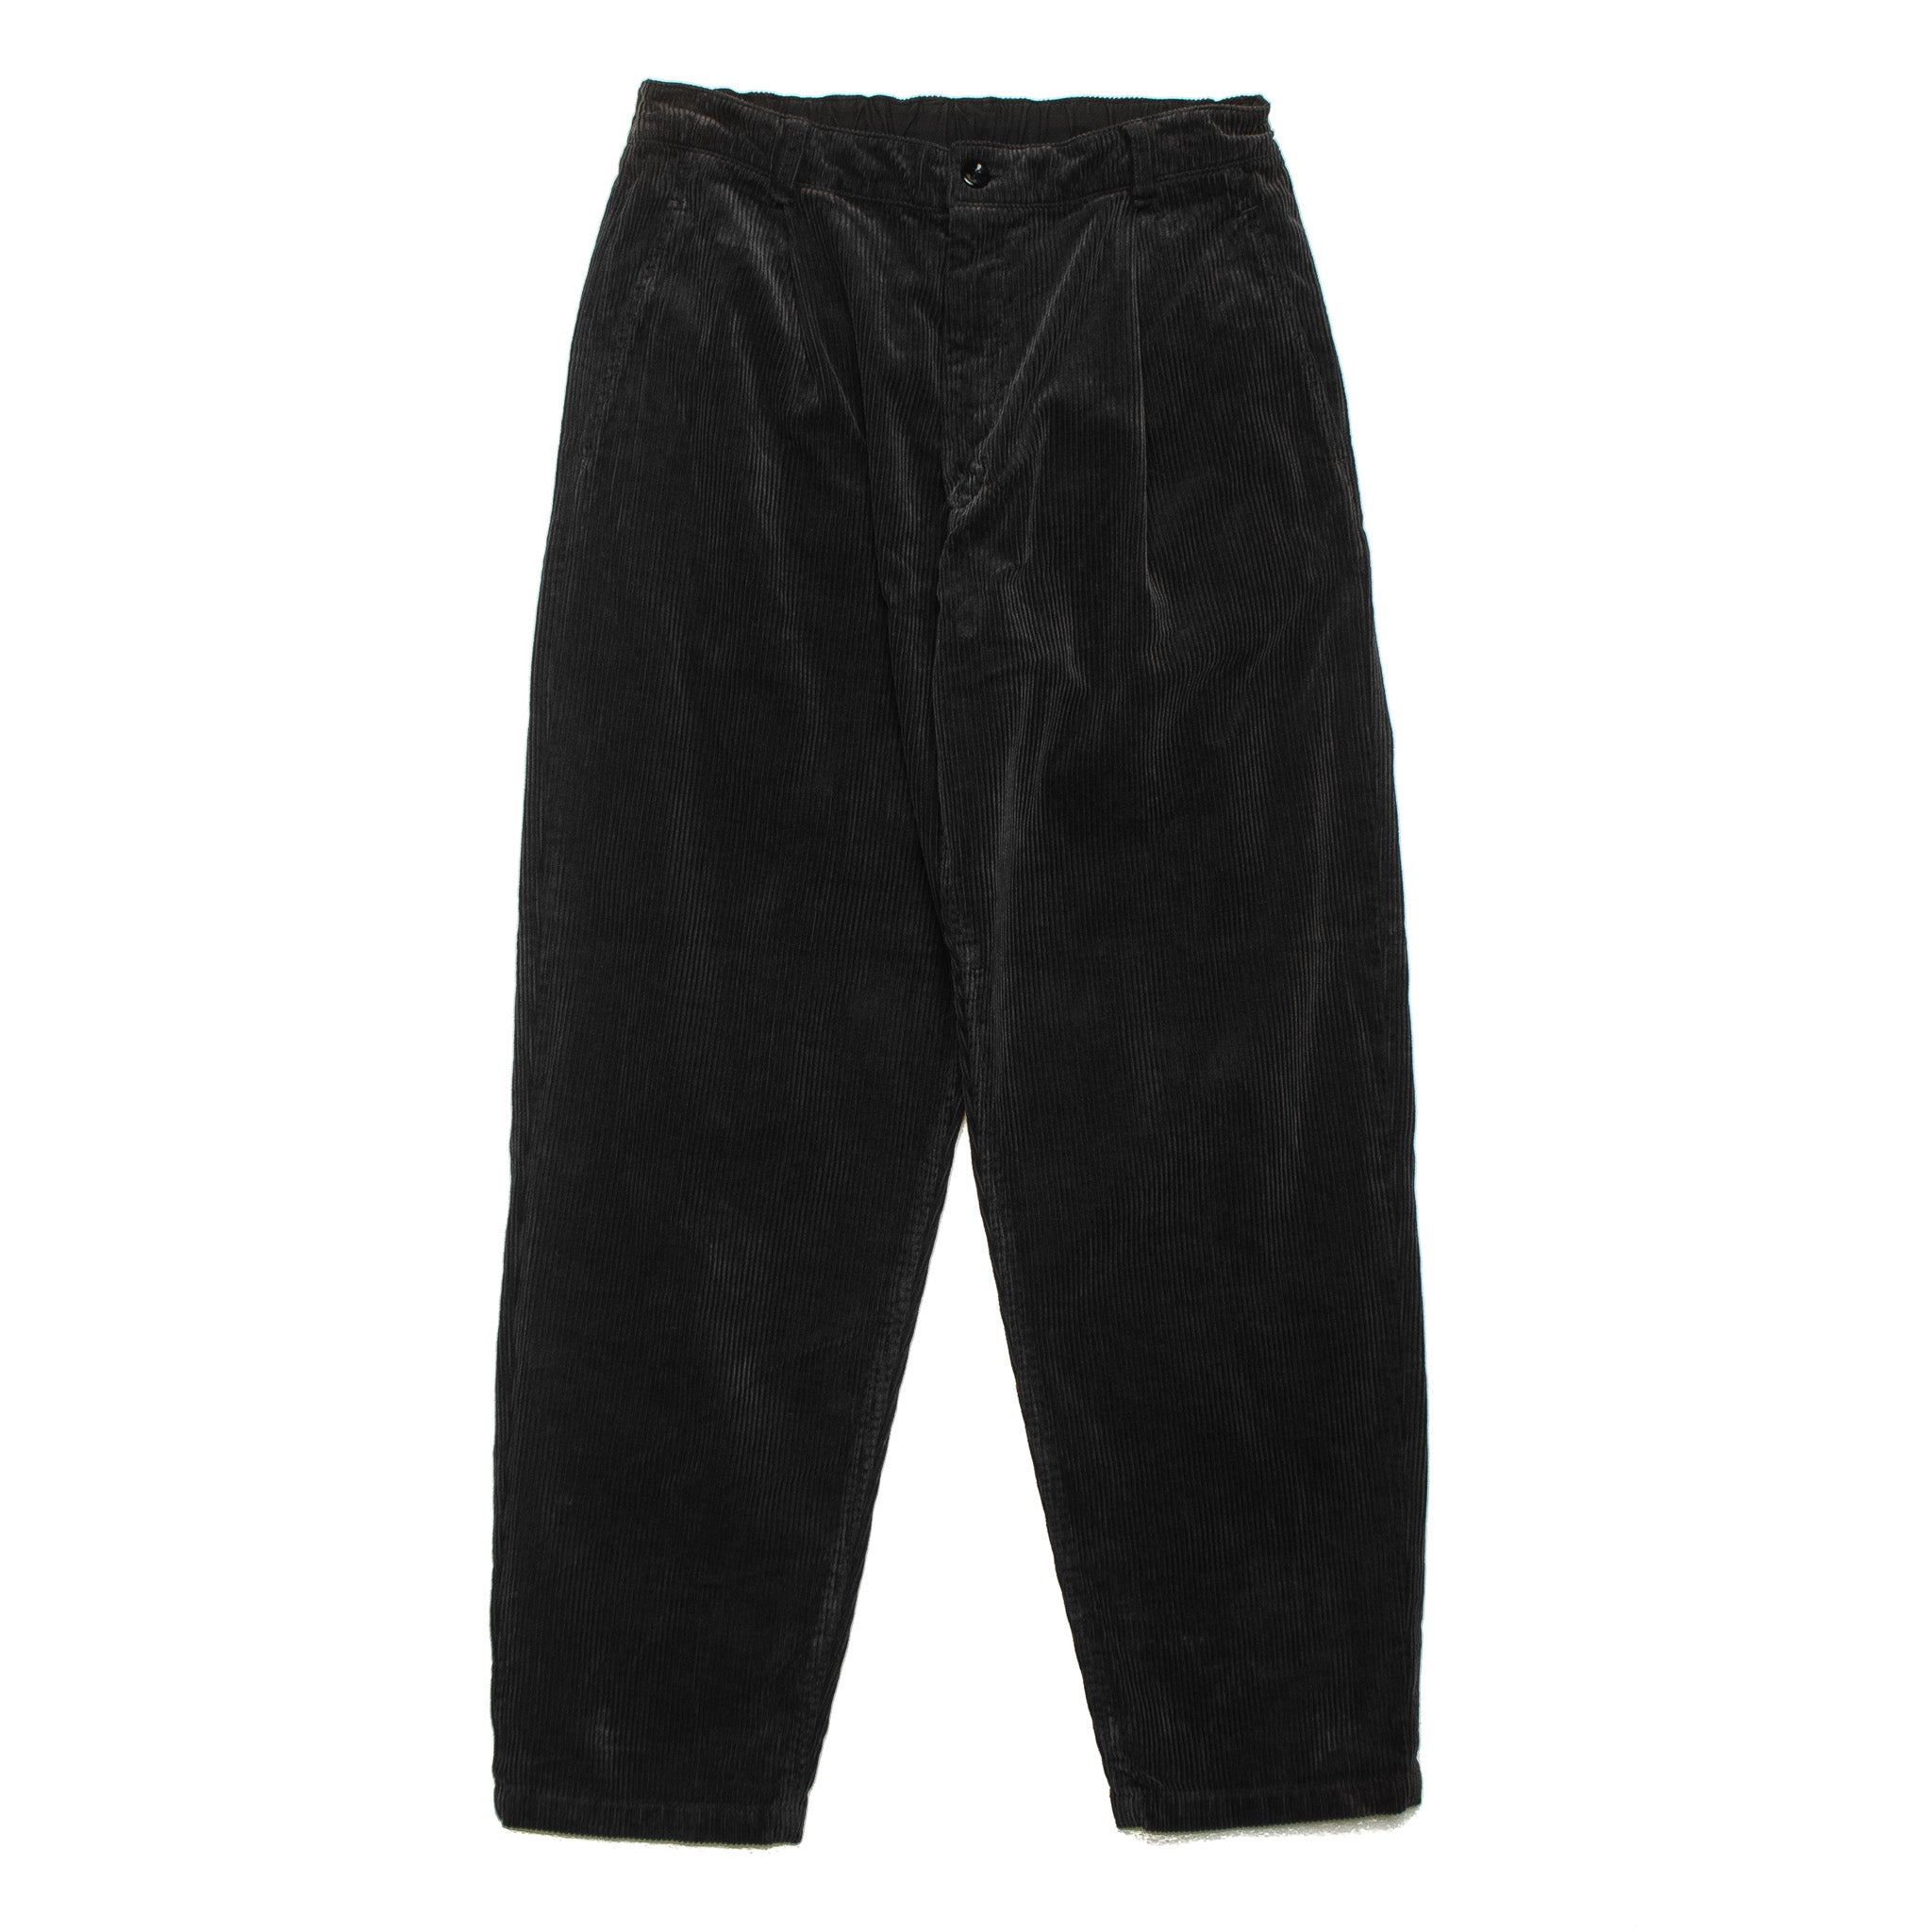 Corduroy Baggy Pants 77210 Black